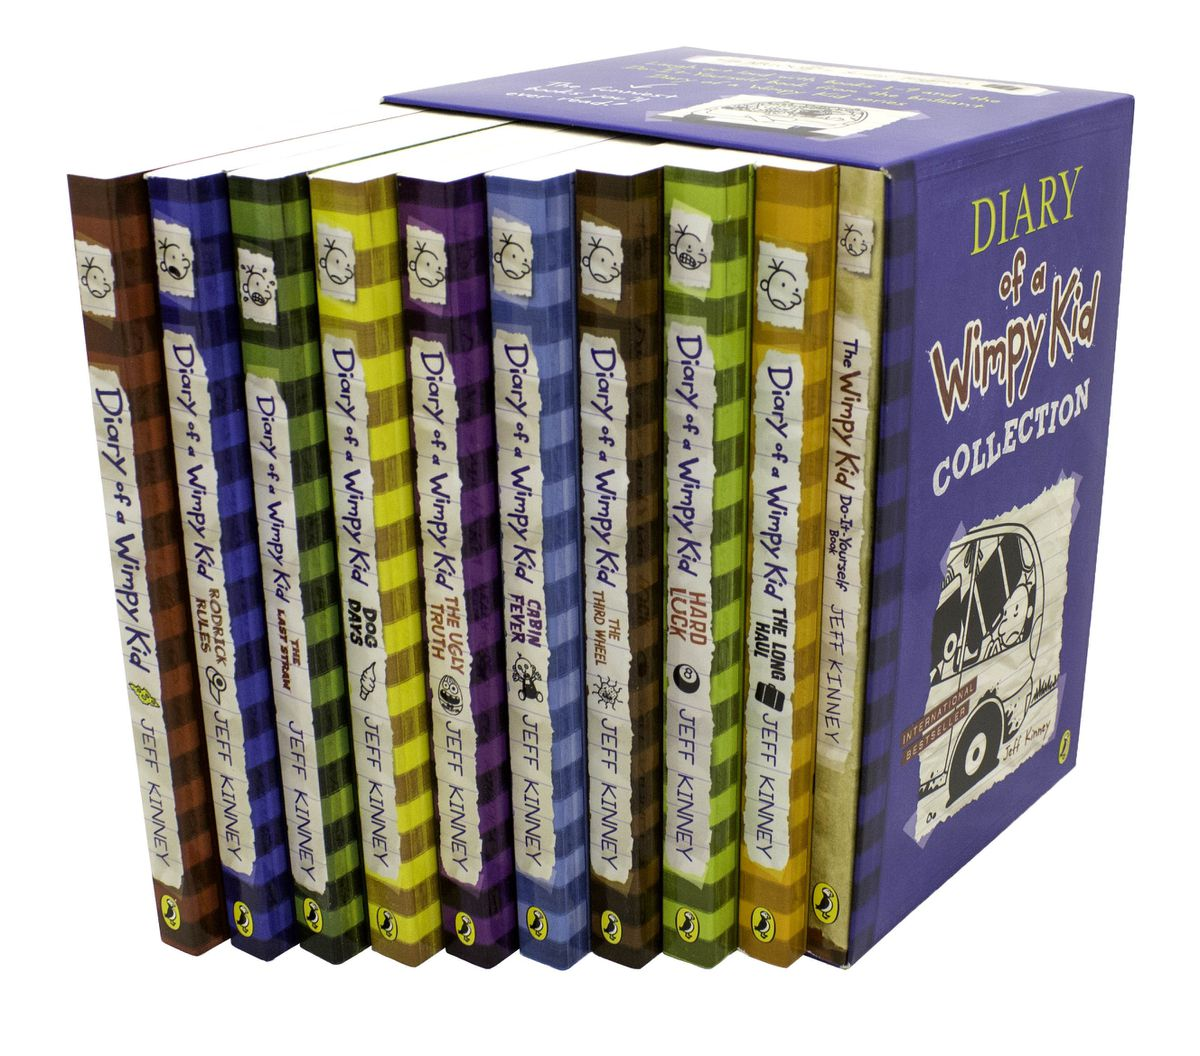 Diary of a wimpy kid 10 book set parallel import buy online in diary of a wimpy kid 10 book set parallel import solutioingenieria Image collections